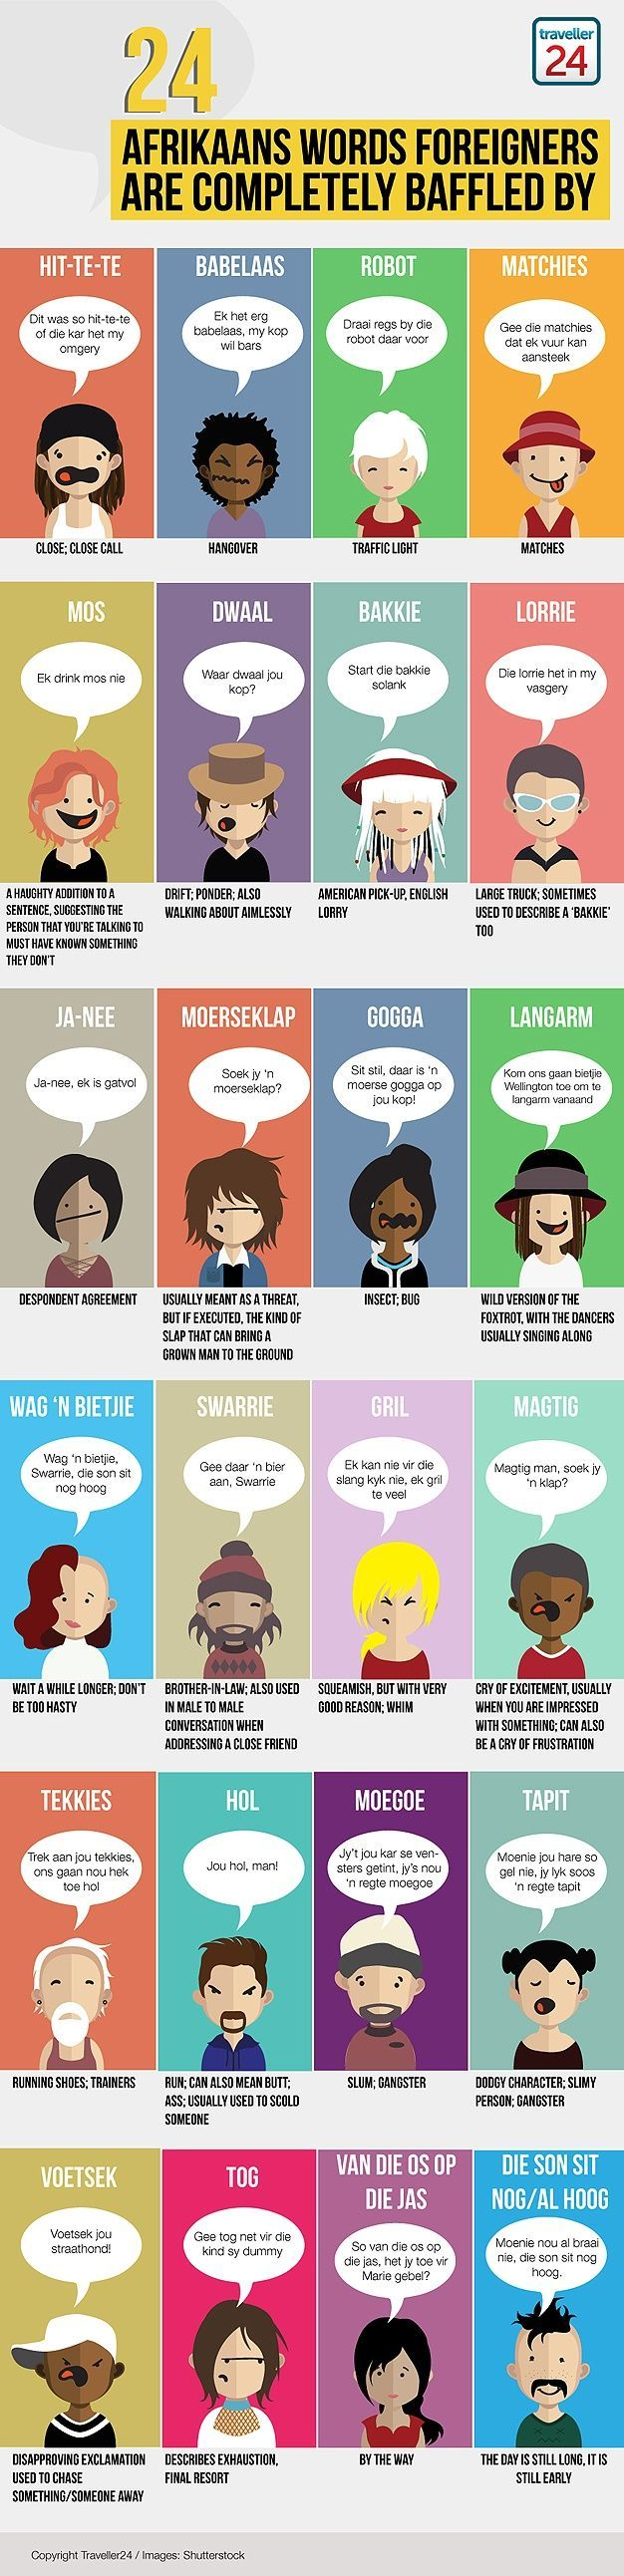 Afrikaans for foreigners